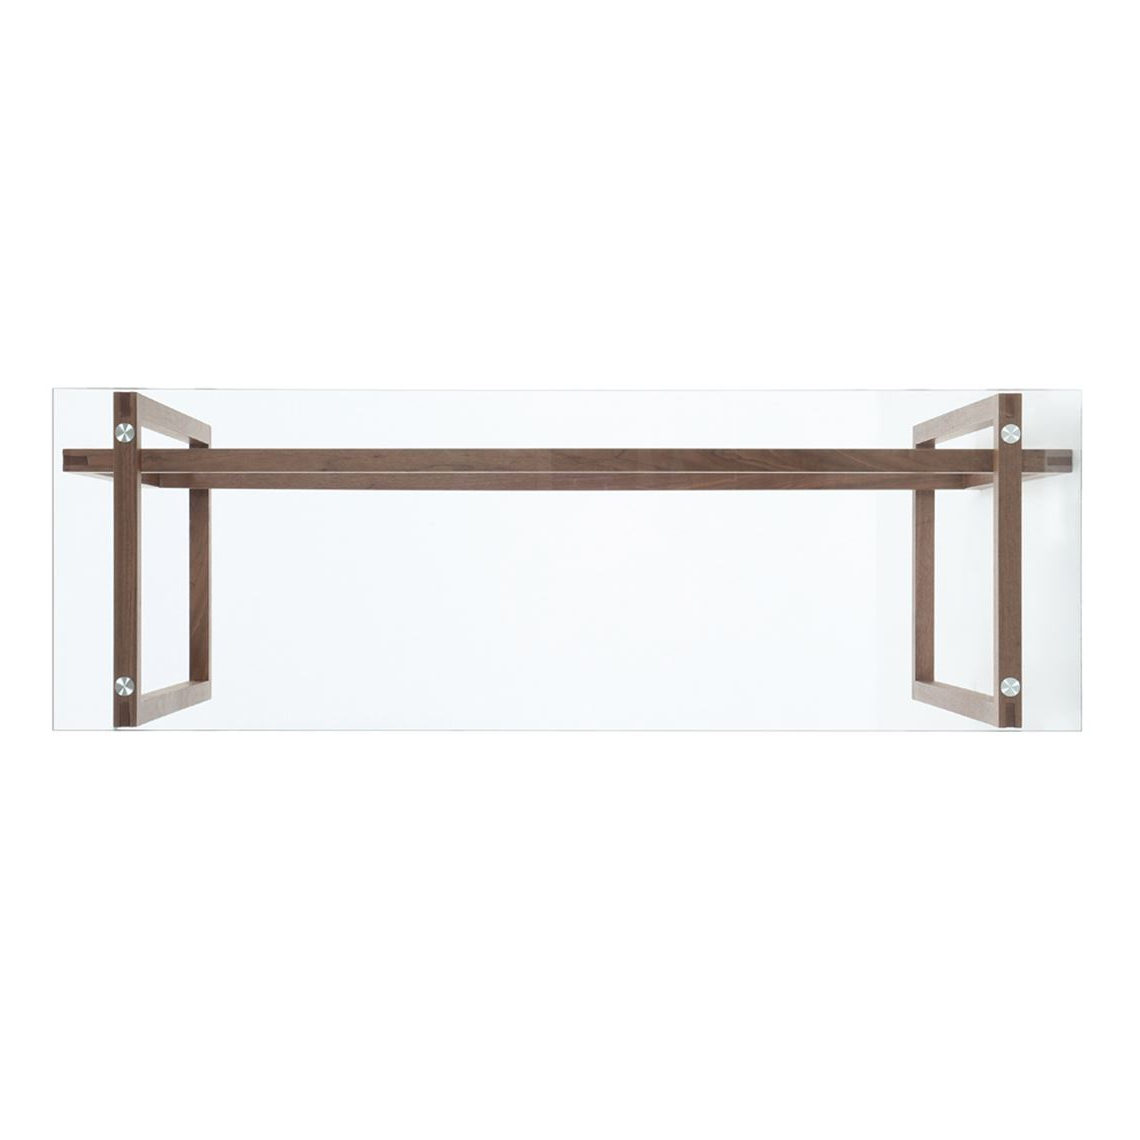 Kyra Console Table | Freedom Throughout Kyra Console Tables (View 5 of 20)